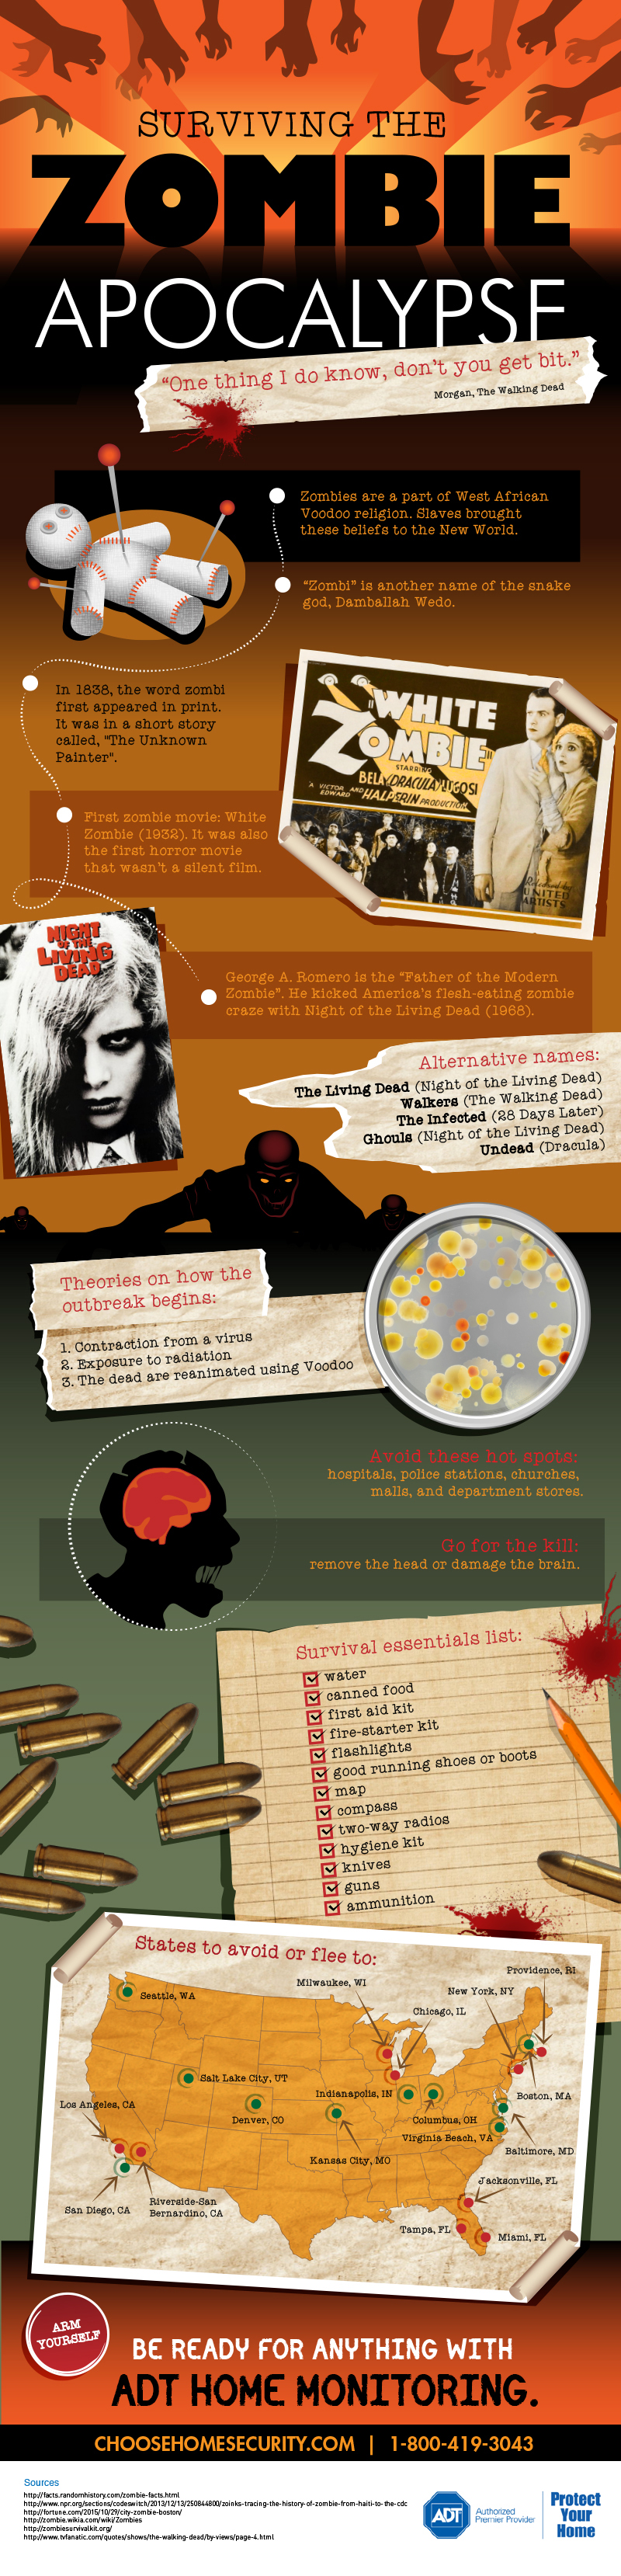 Surviving The Zombie Apocalypse Infographic